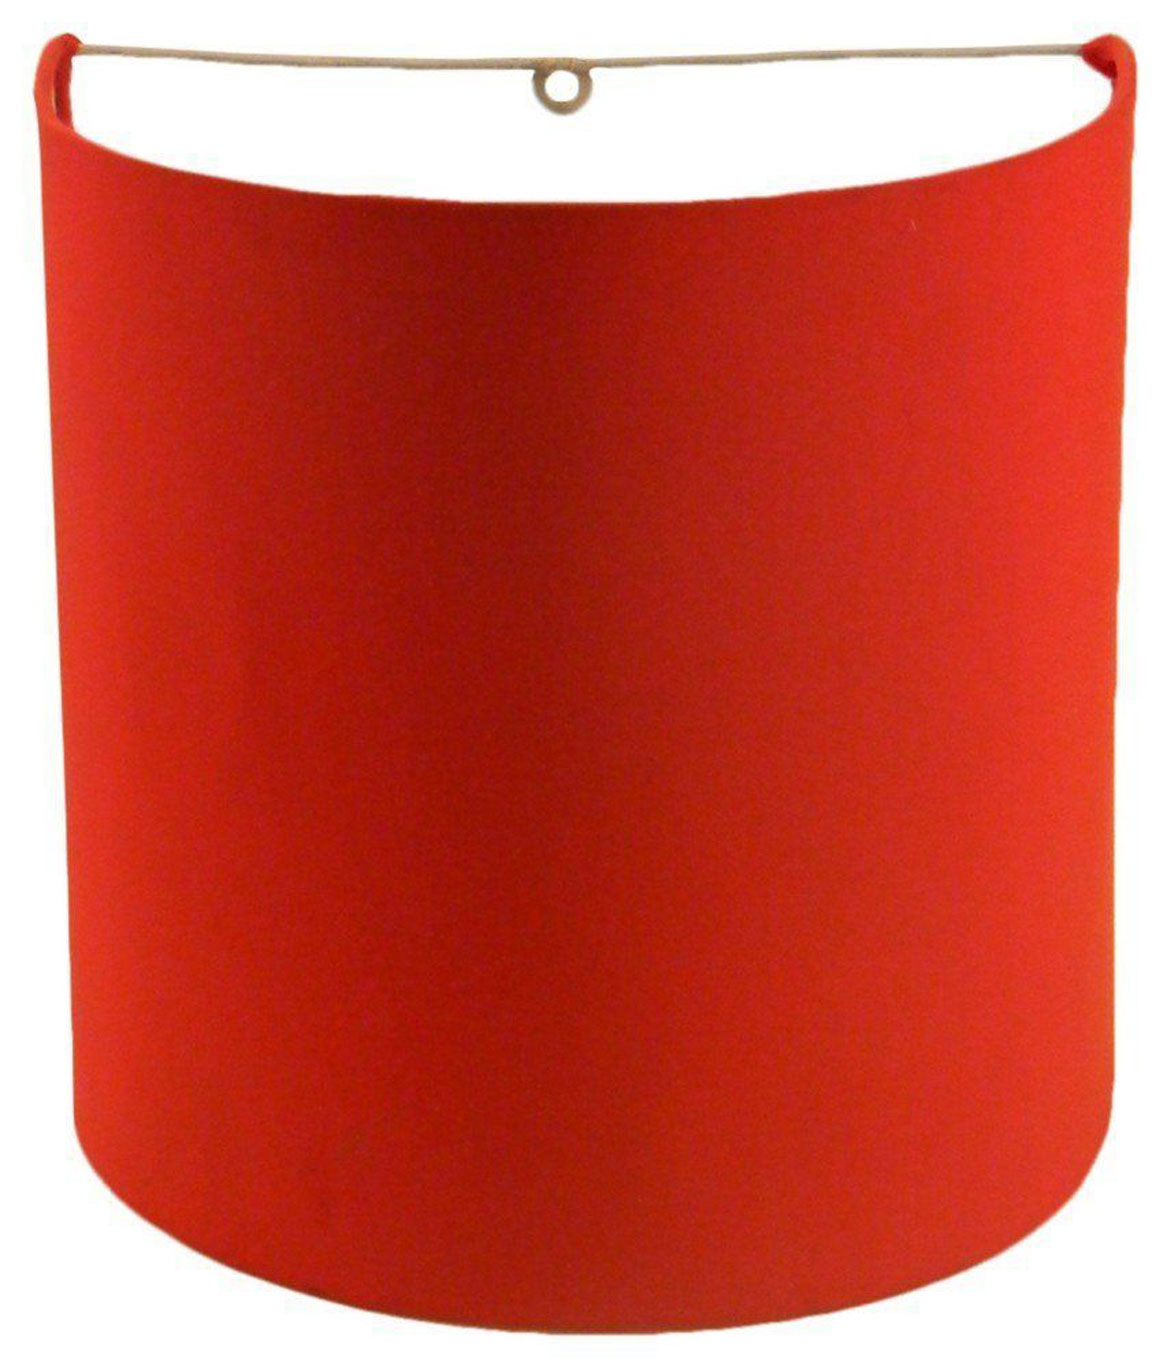 RDC 23 CMS Red Half-cylindrical Wall Hanging Lamp Shade